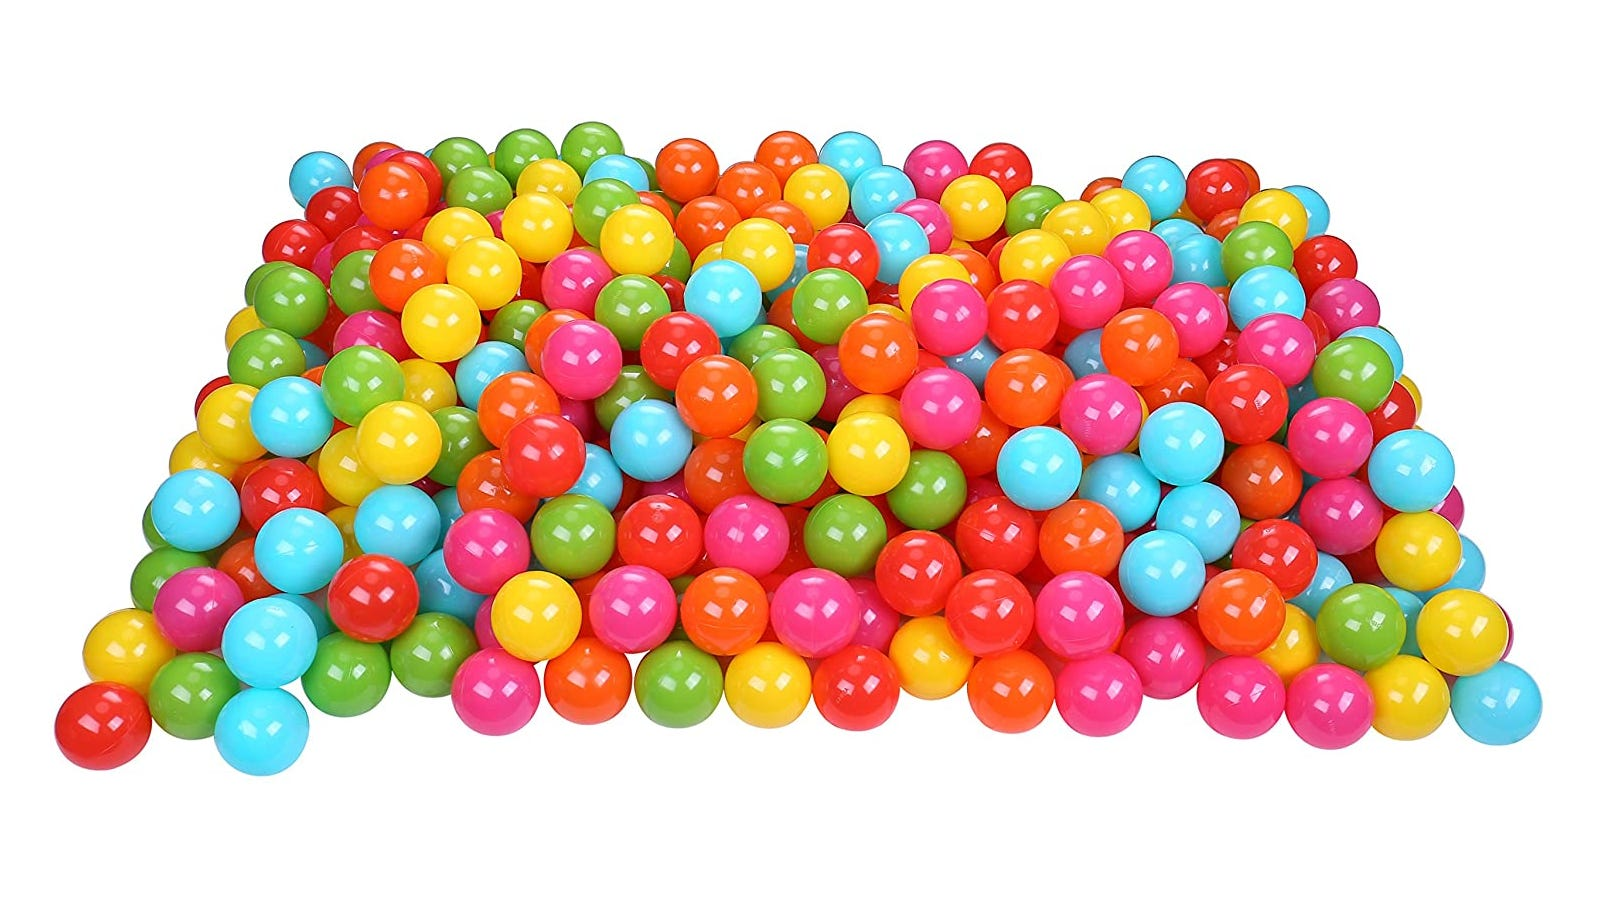 large pile of pink, red, blue, green, and yellow plastic balls